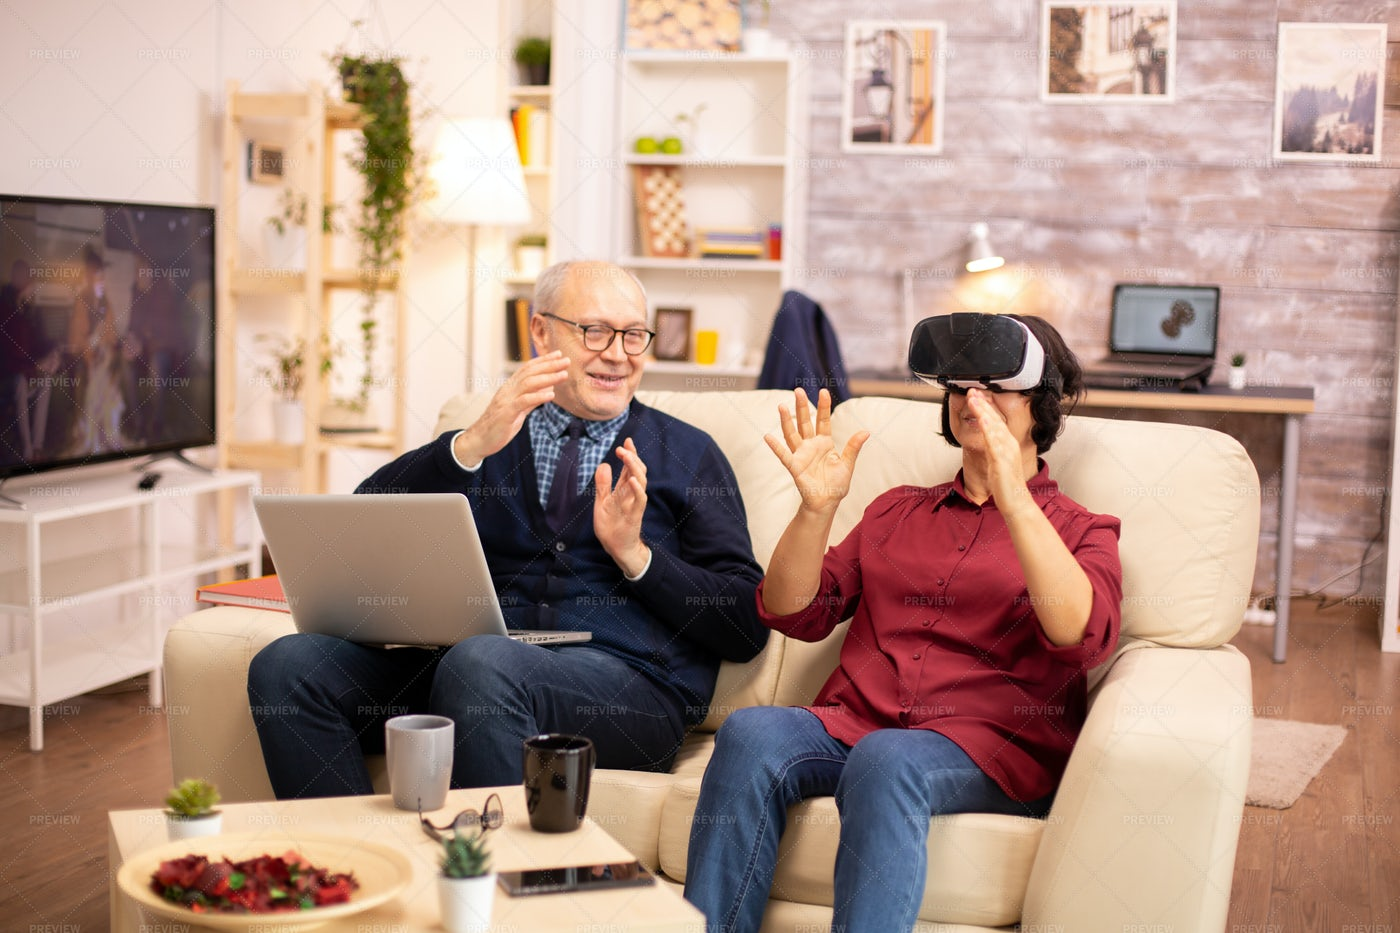 Woman Experiencing VR At Home: Stock Photos